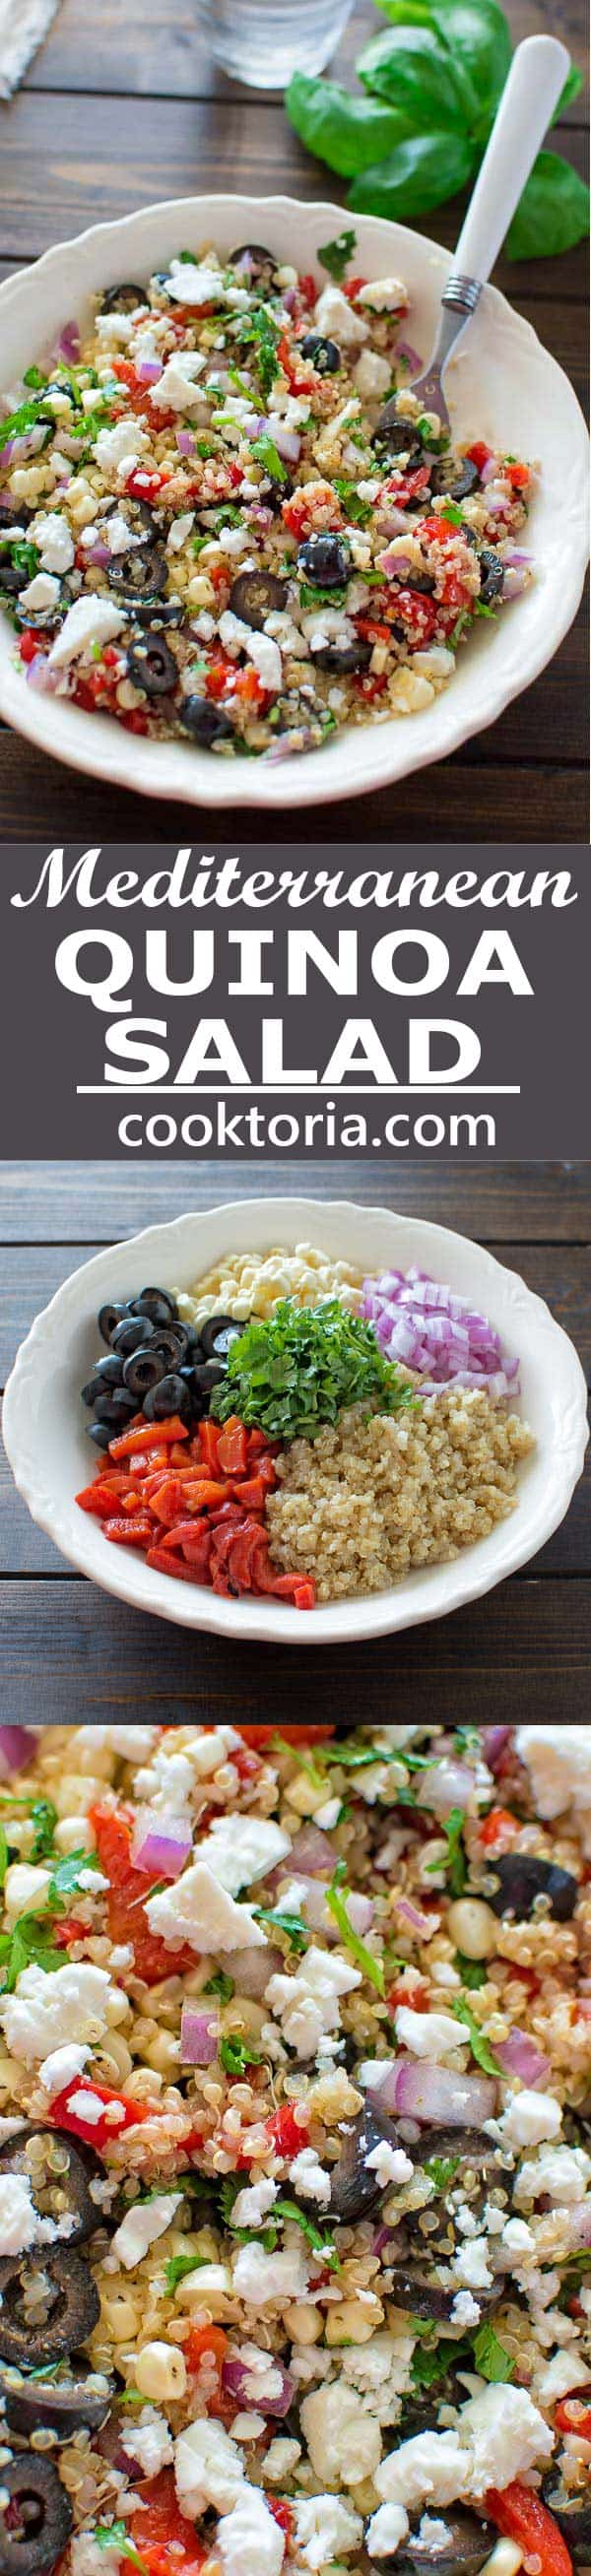 All the flavors of Mediterranean cuisine in one bowl! Healthy and so easy to make, this Mediterranean Quinoa Salad makes a perfect lunch or dinner. ? tgncooking.com